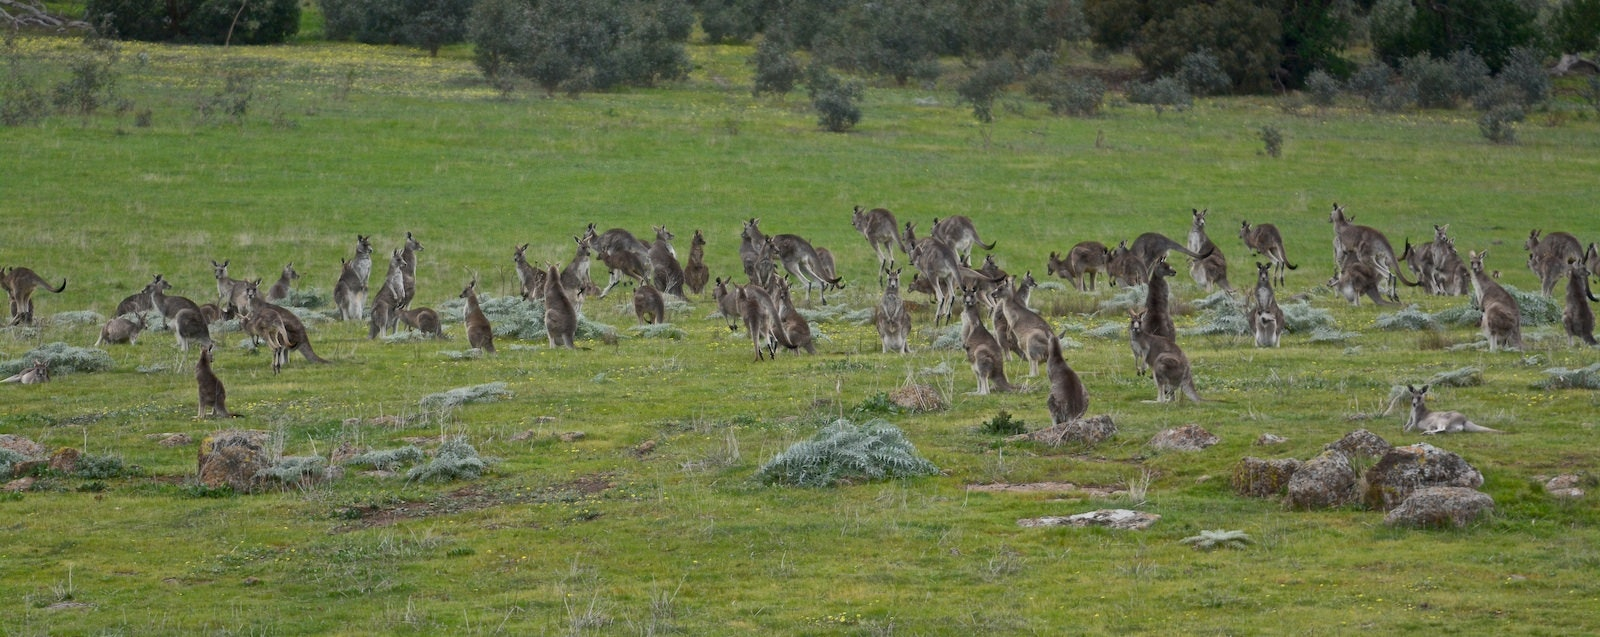 new evidence culling kangaroos could help the environment